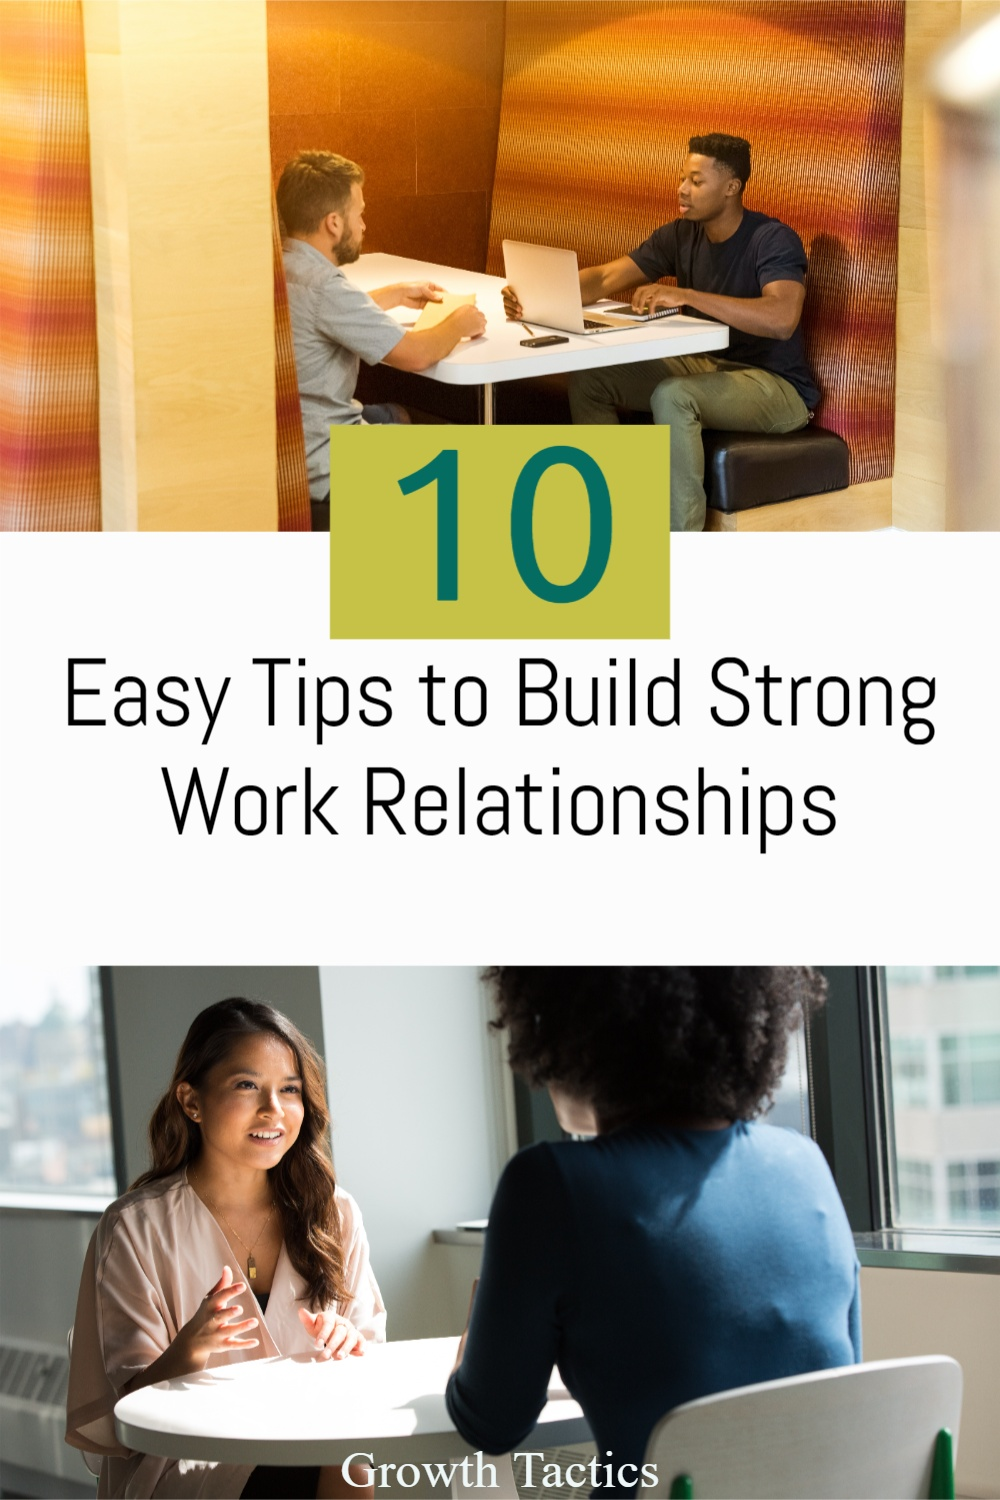 10 Easy Tips to Build Strong Work Relationships